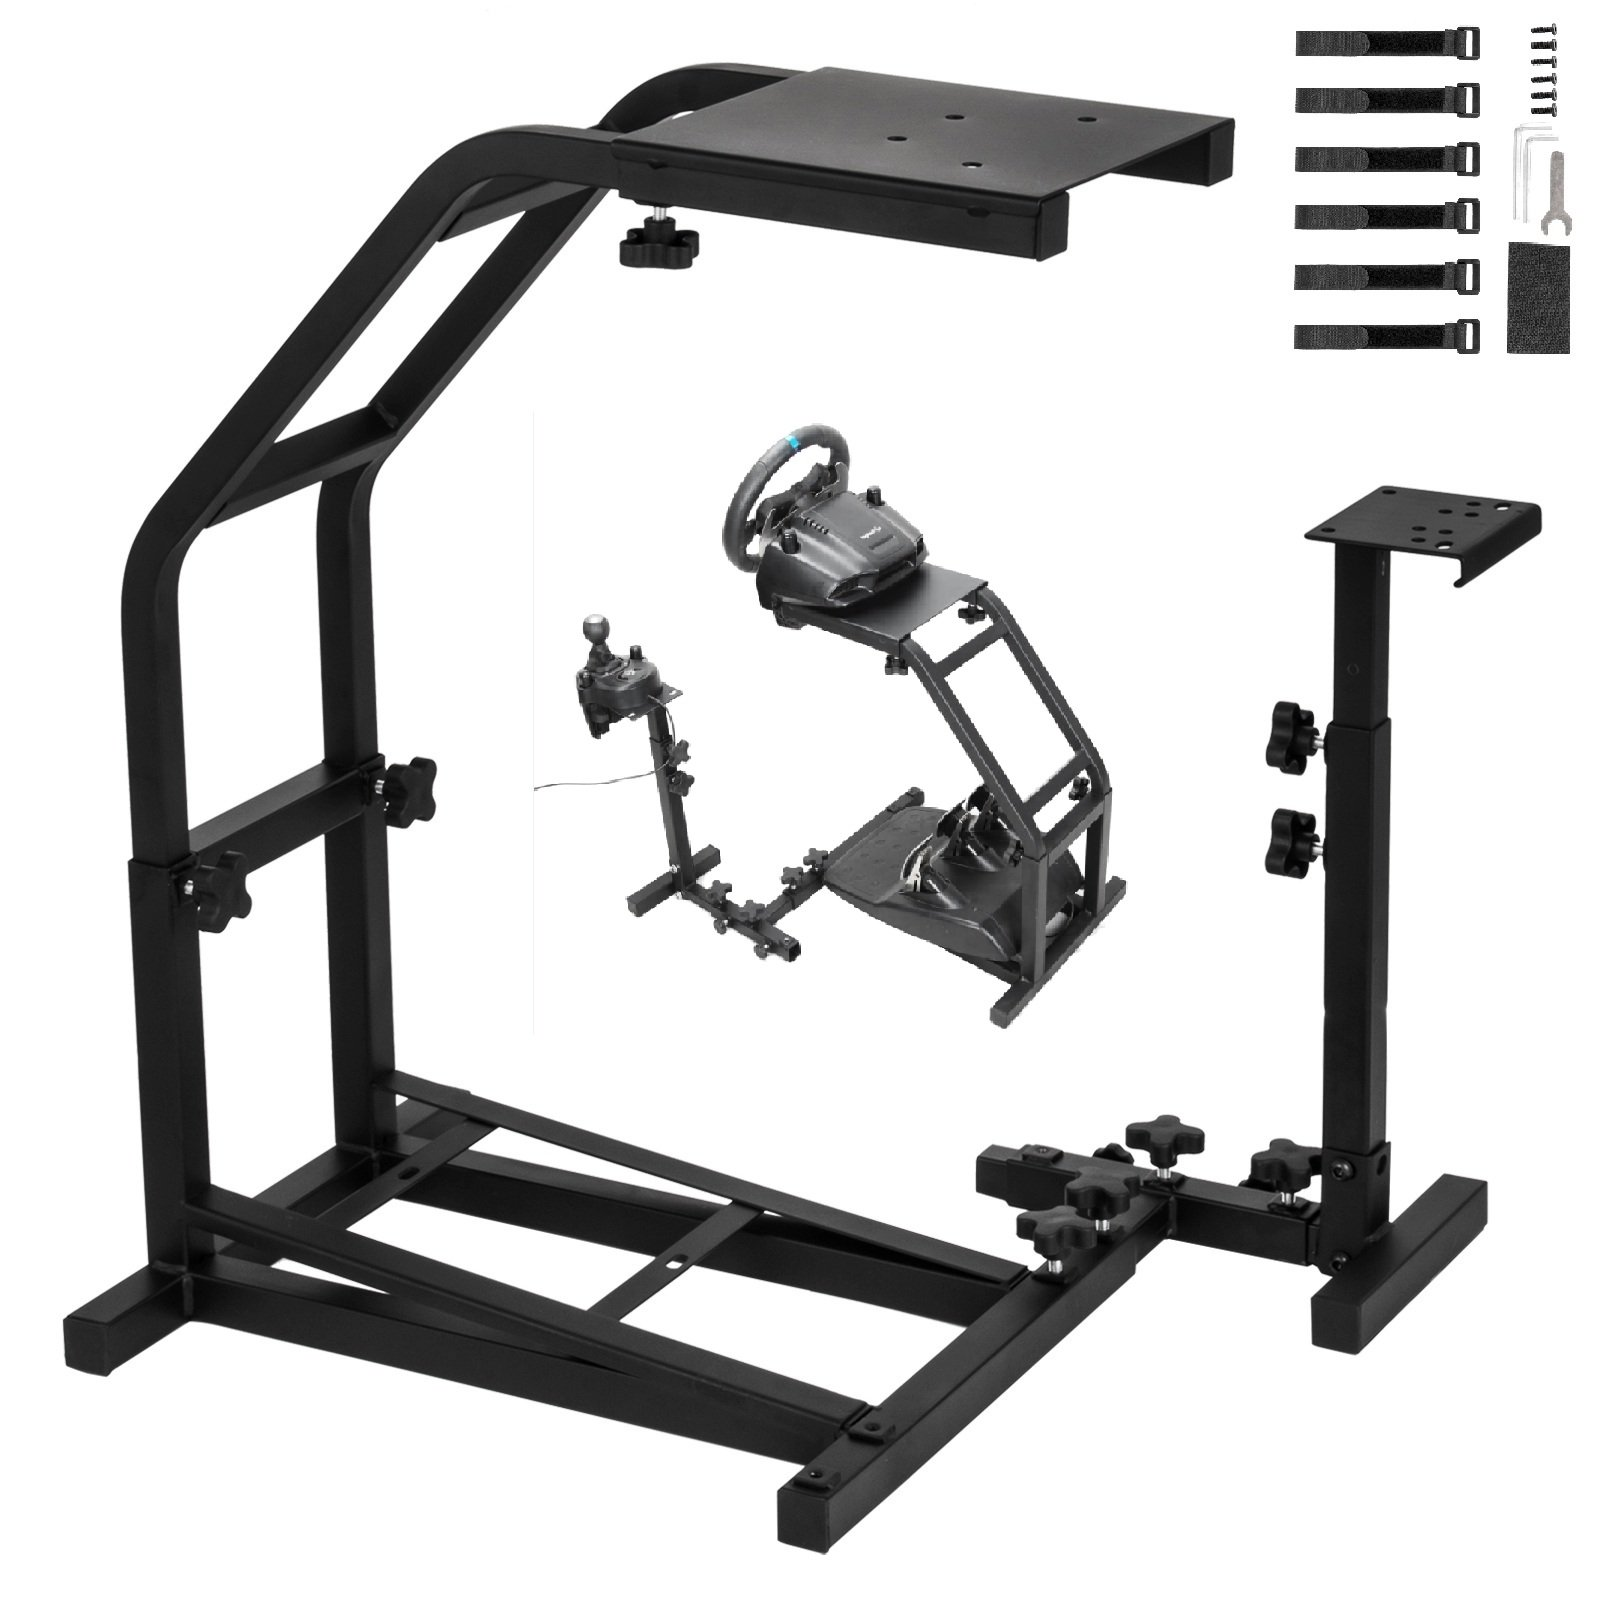 Stand, G29 VEVOR G29 G920 Racing Steering Wheel Stand Logitech G25 G27 G29 G920 Racing Wheel Pro Stand Wheel Pedals Not Included Gaming Racing Simulator Wheel Stand